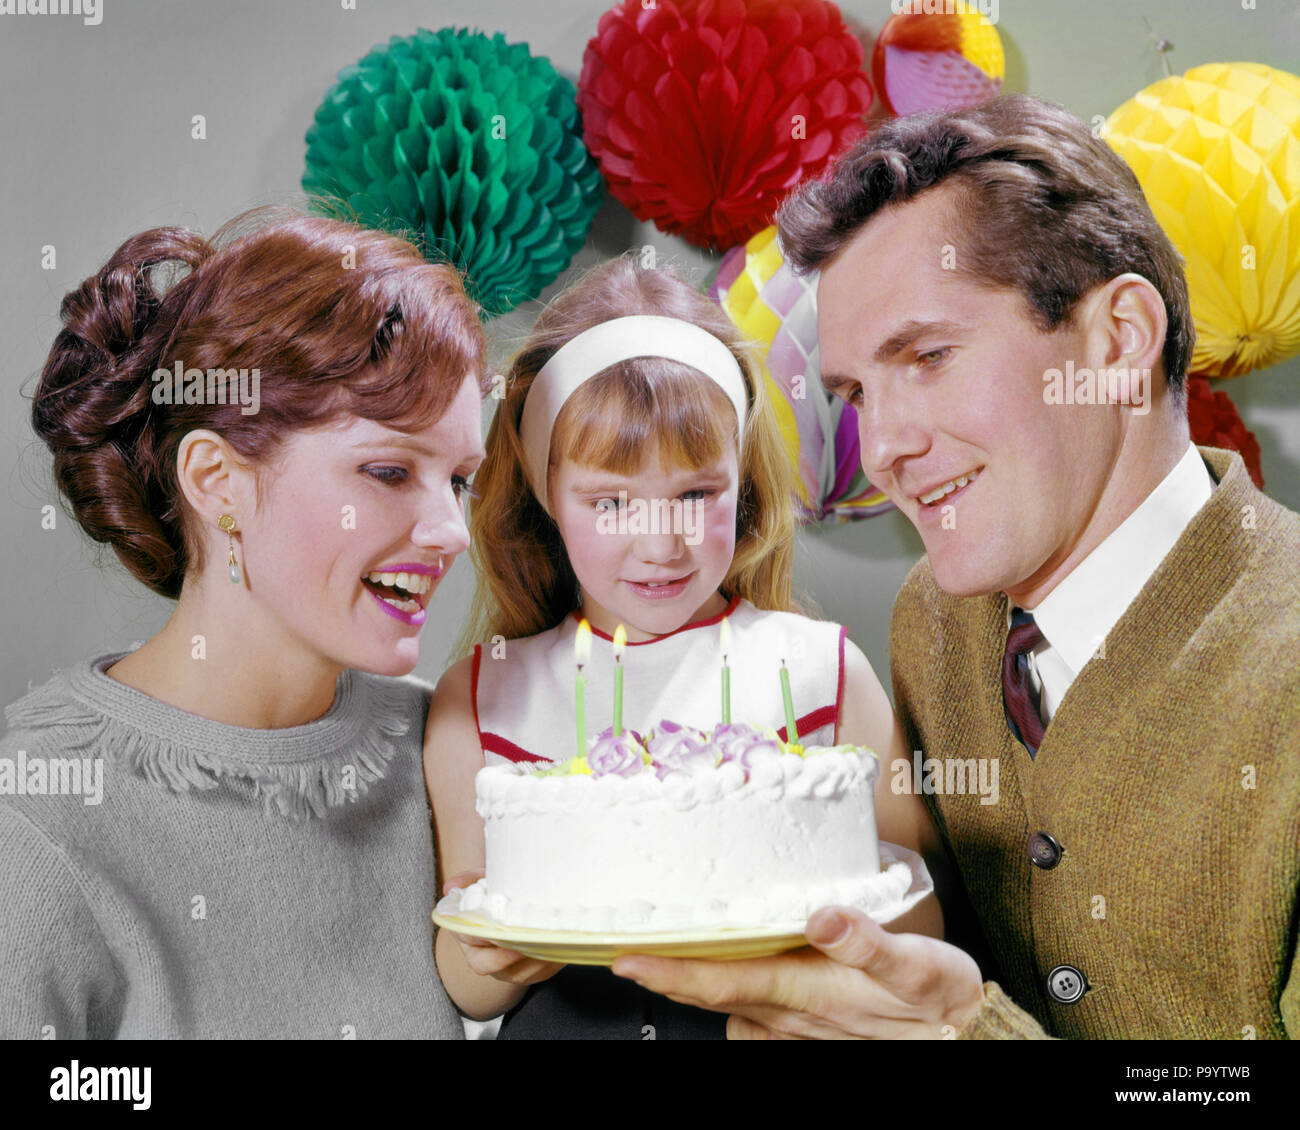 1960s SMILING MOTHER AND FATHER WITH DAUGHTER READY TO BLOW OUT CANDLES ON BIRTHDAY CAKE PARTY DECORATIONS